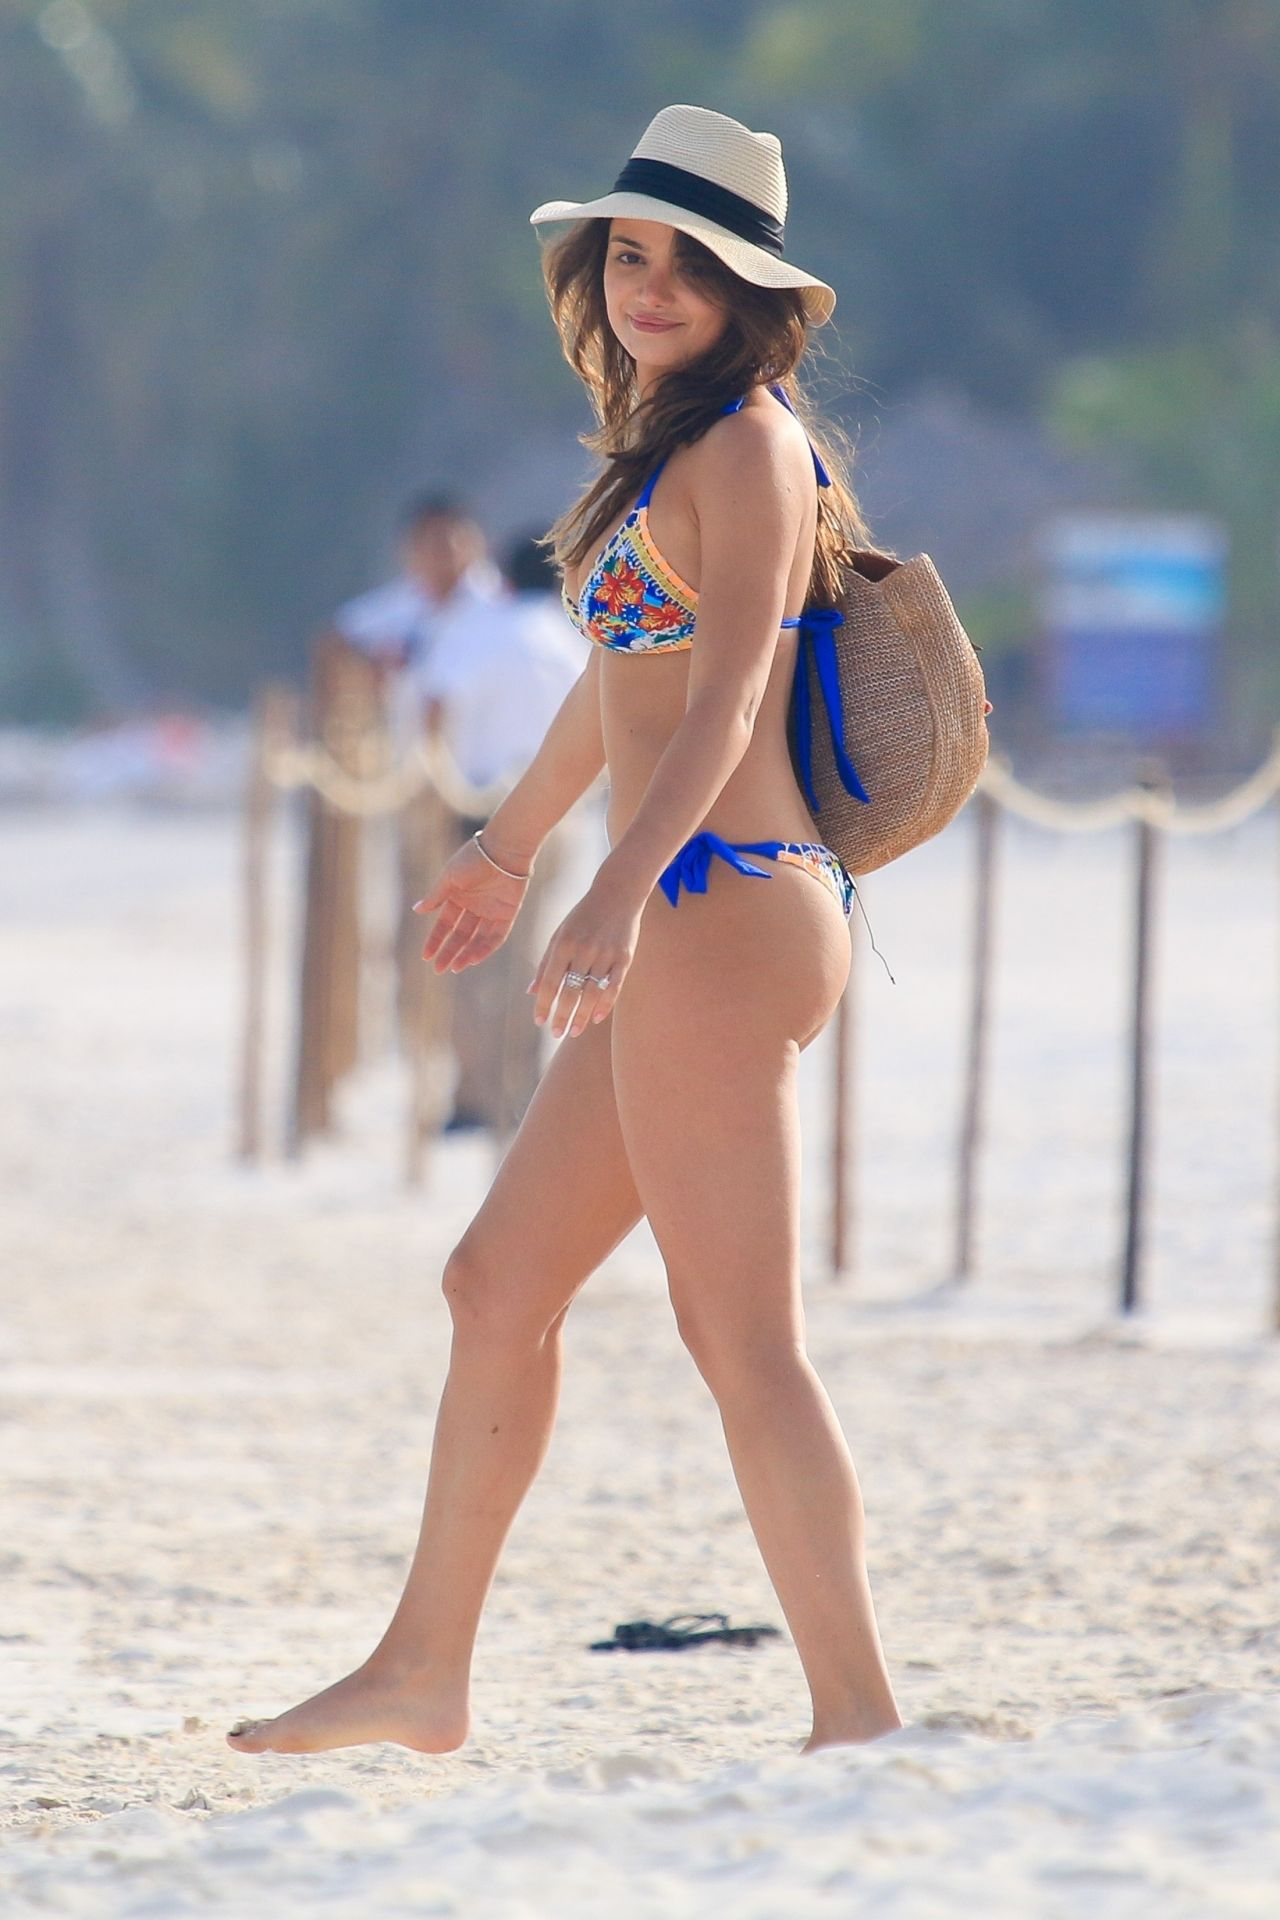 Keleigh Sperry in Bikini on the beach in Mexico Pic 1 of 35